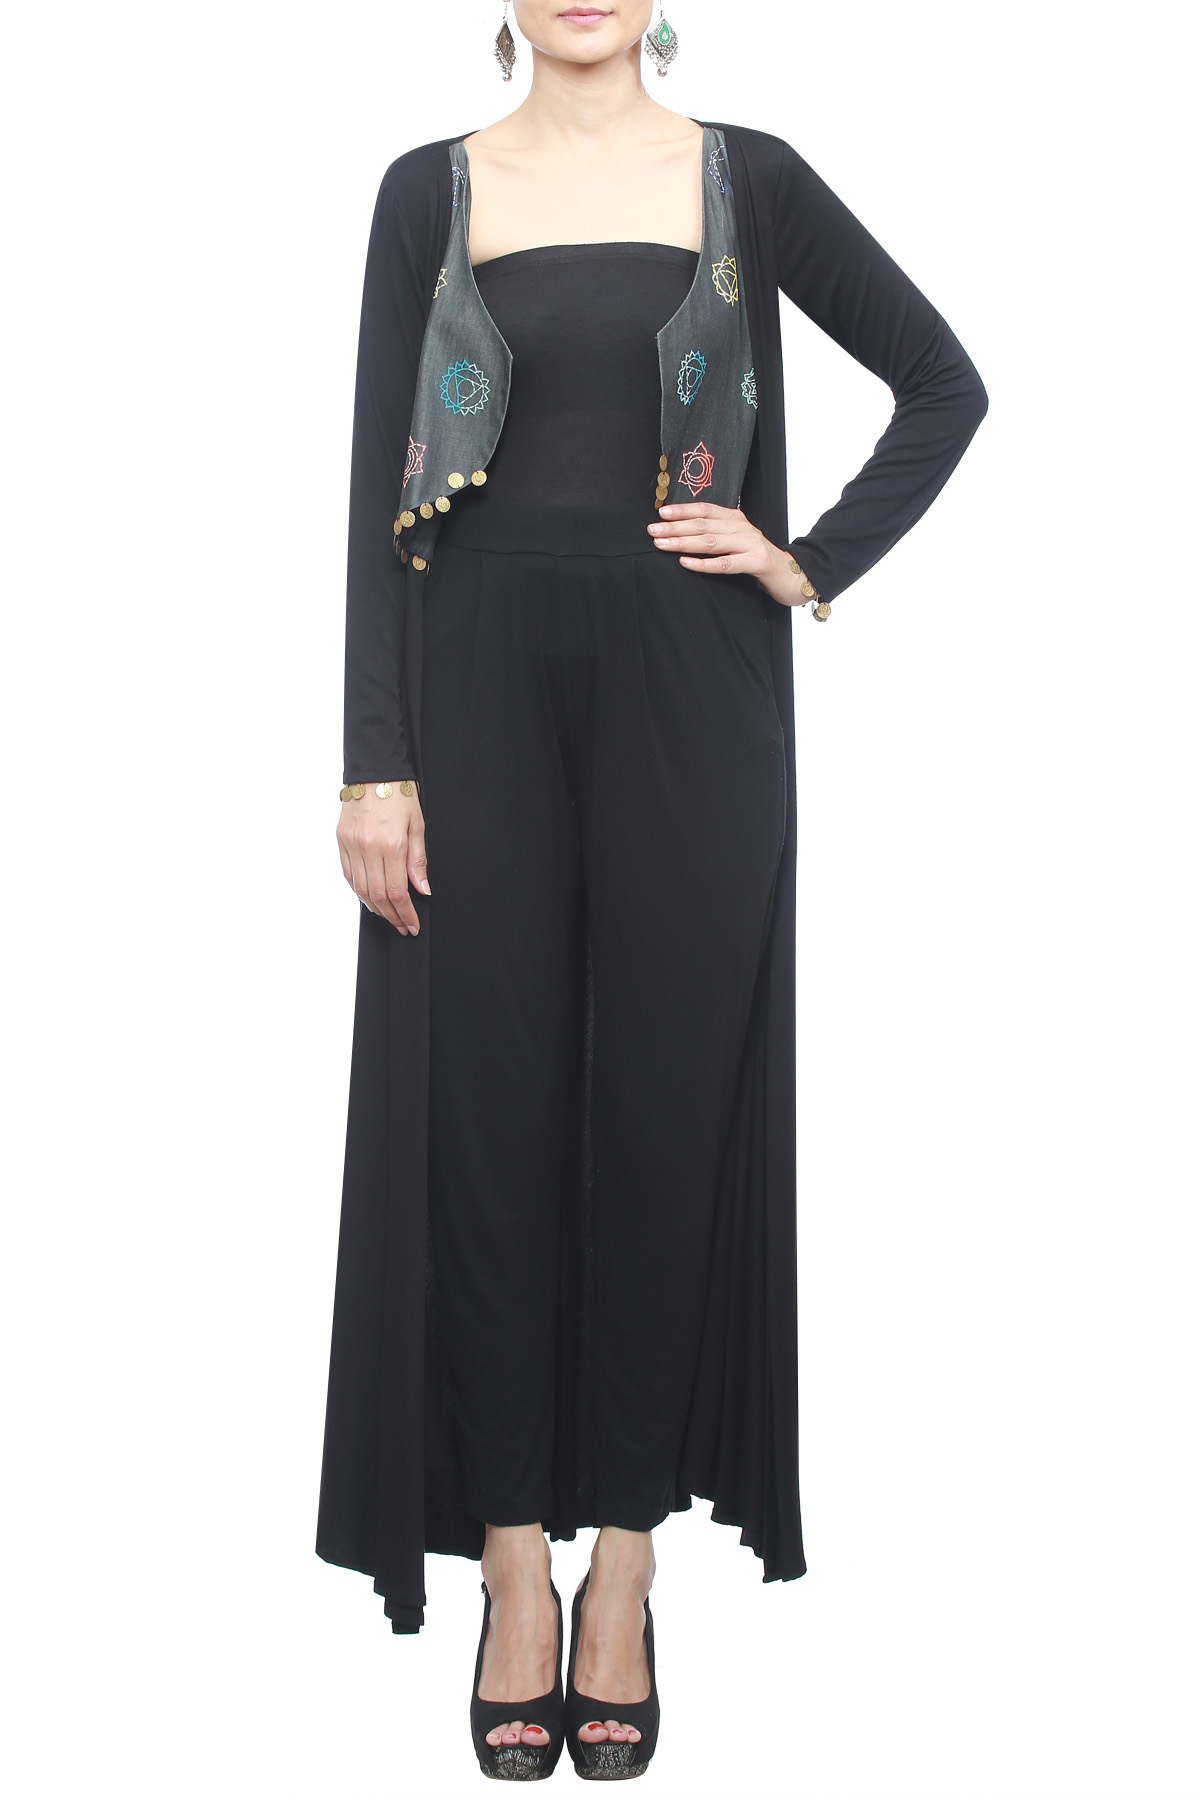 Black Full sleeves Cape with Embroidery & Block Print